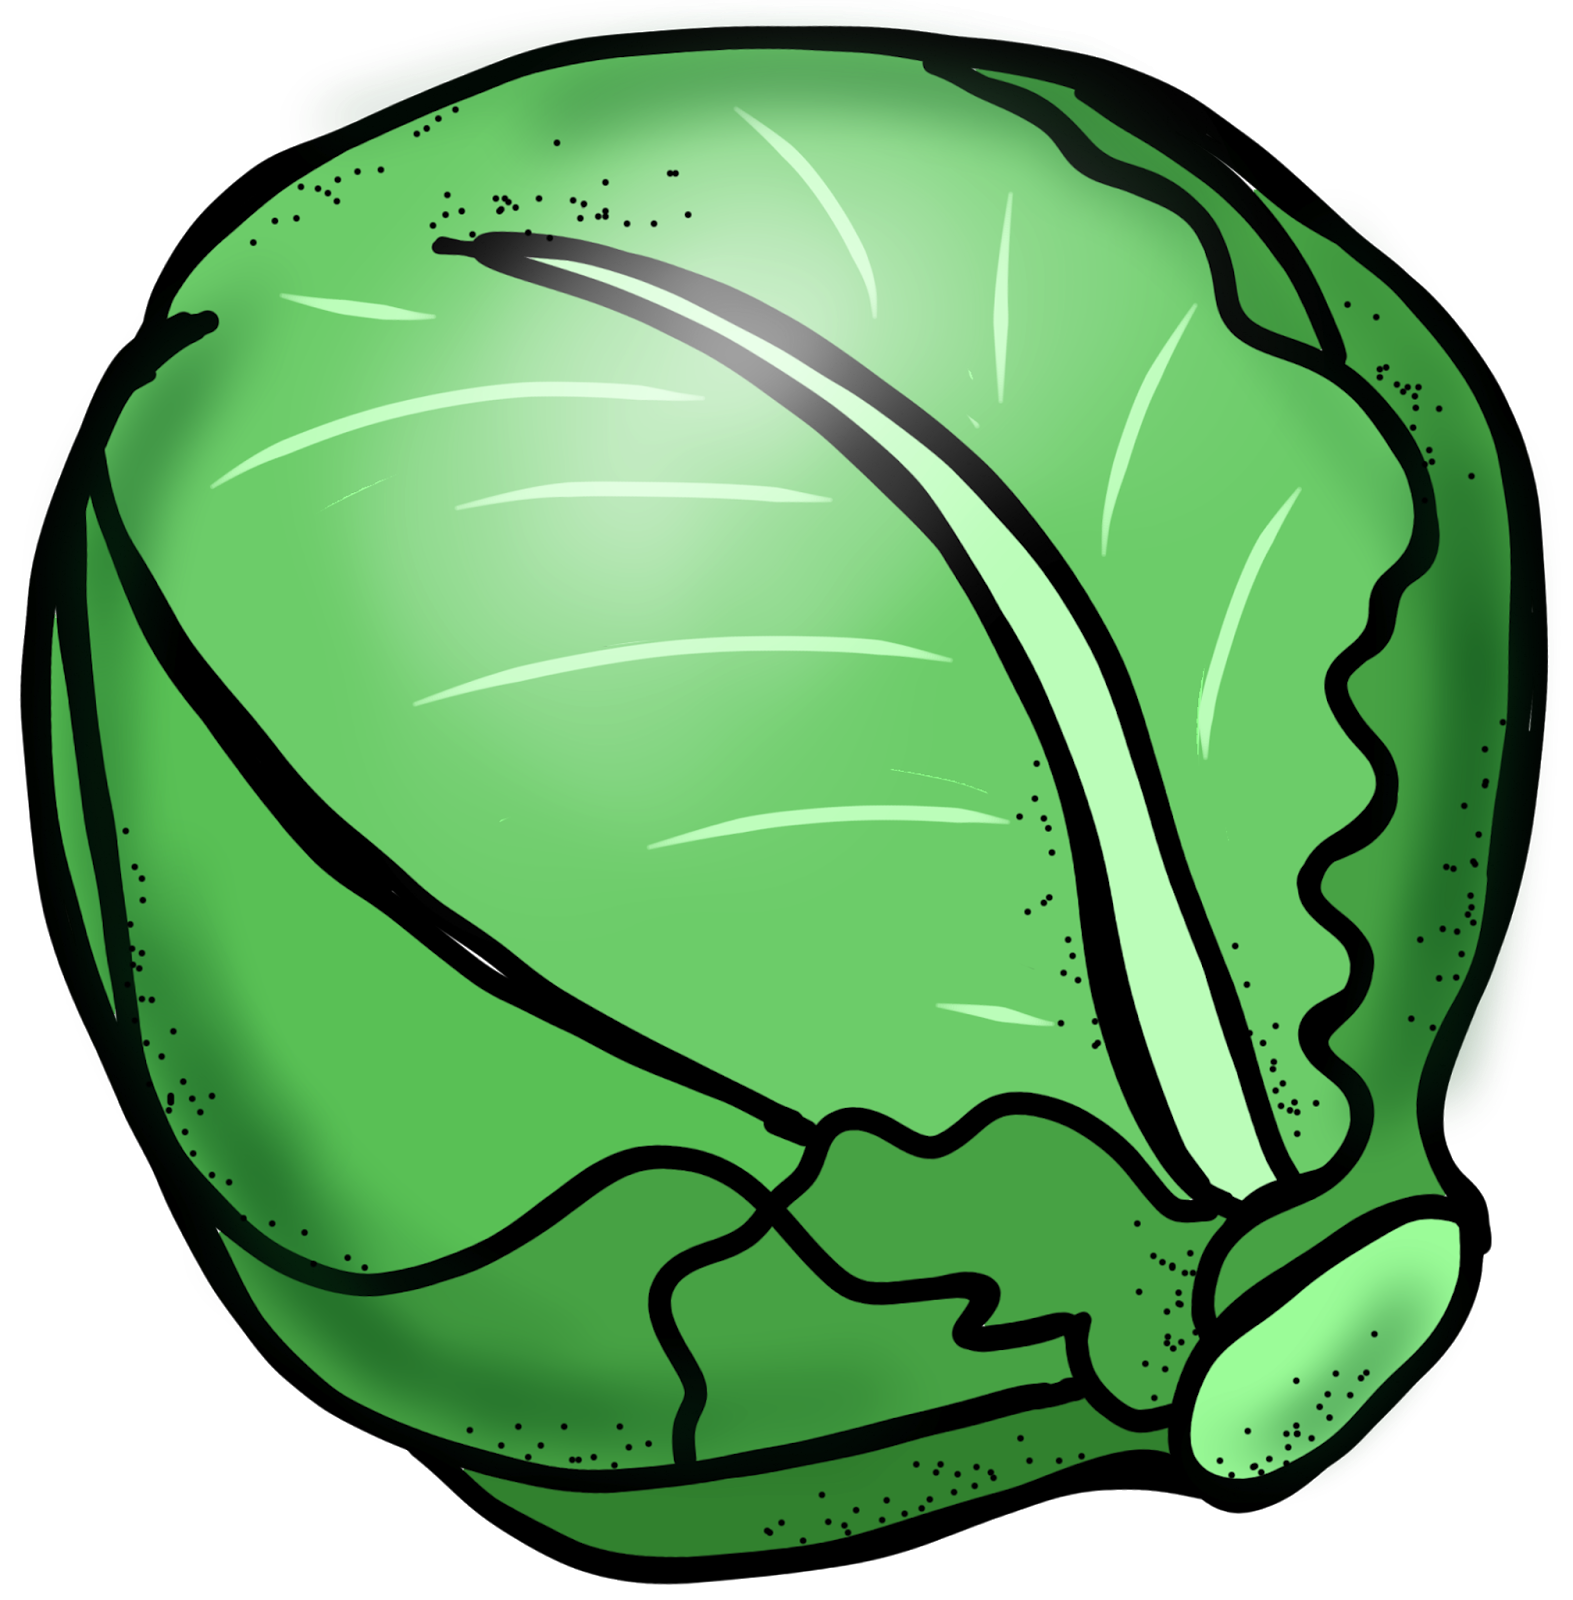 Free Cabbage Cliparts, Download Free Clip Art, Free Clip Art.